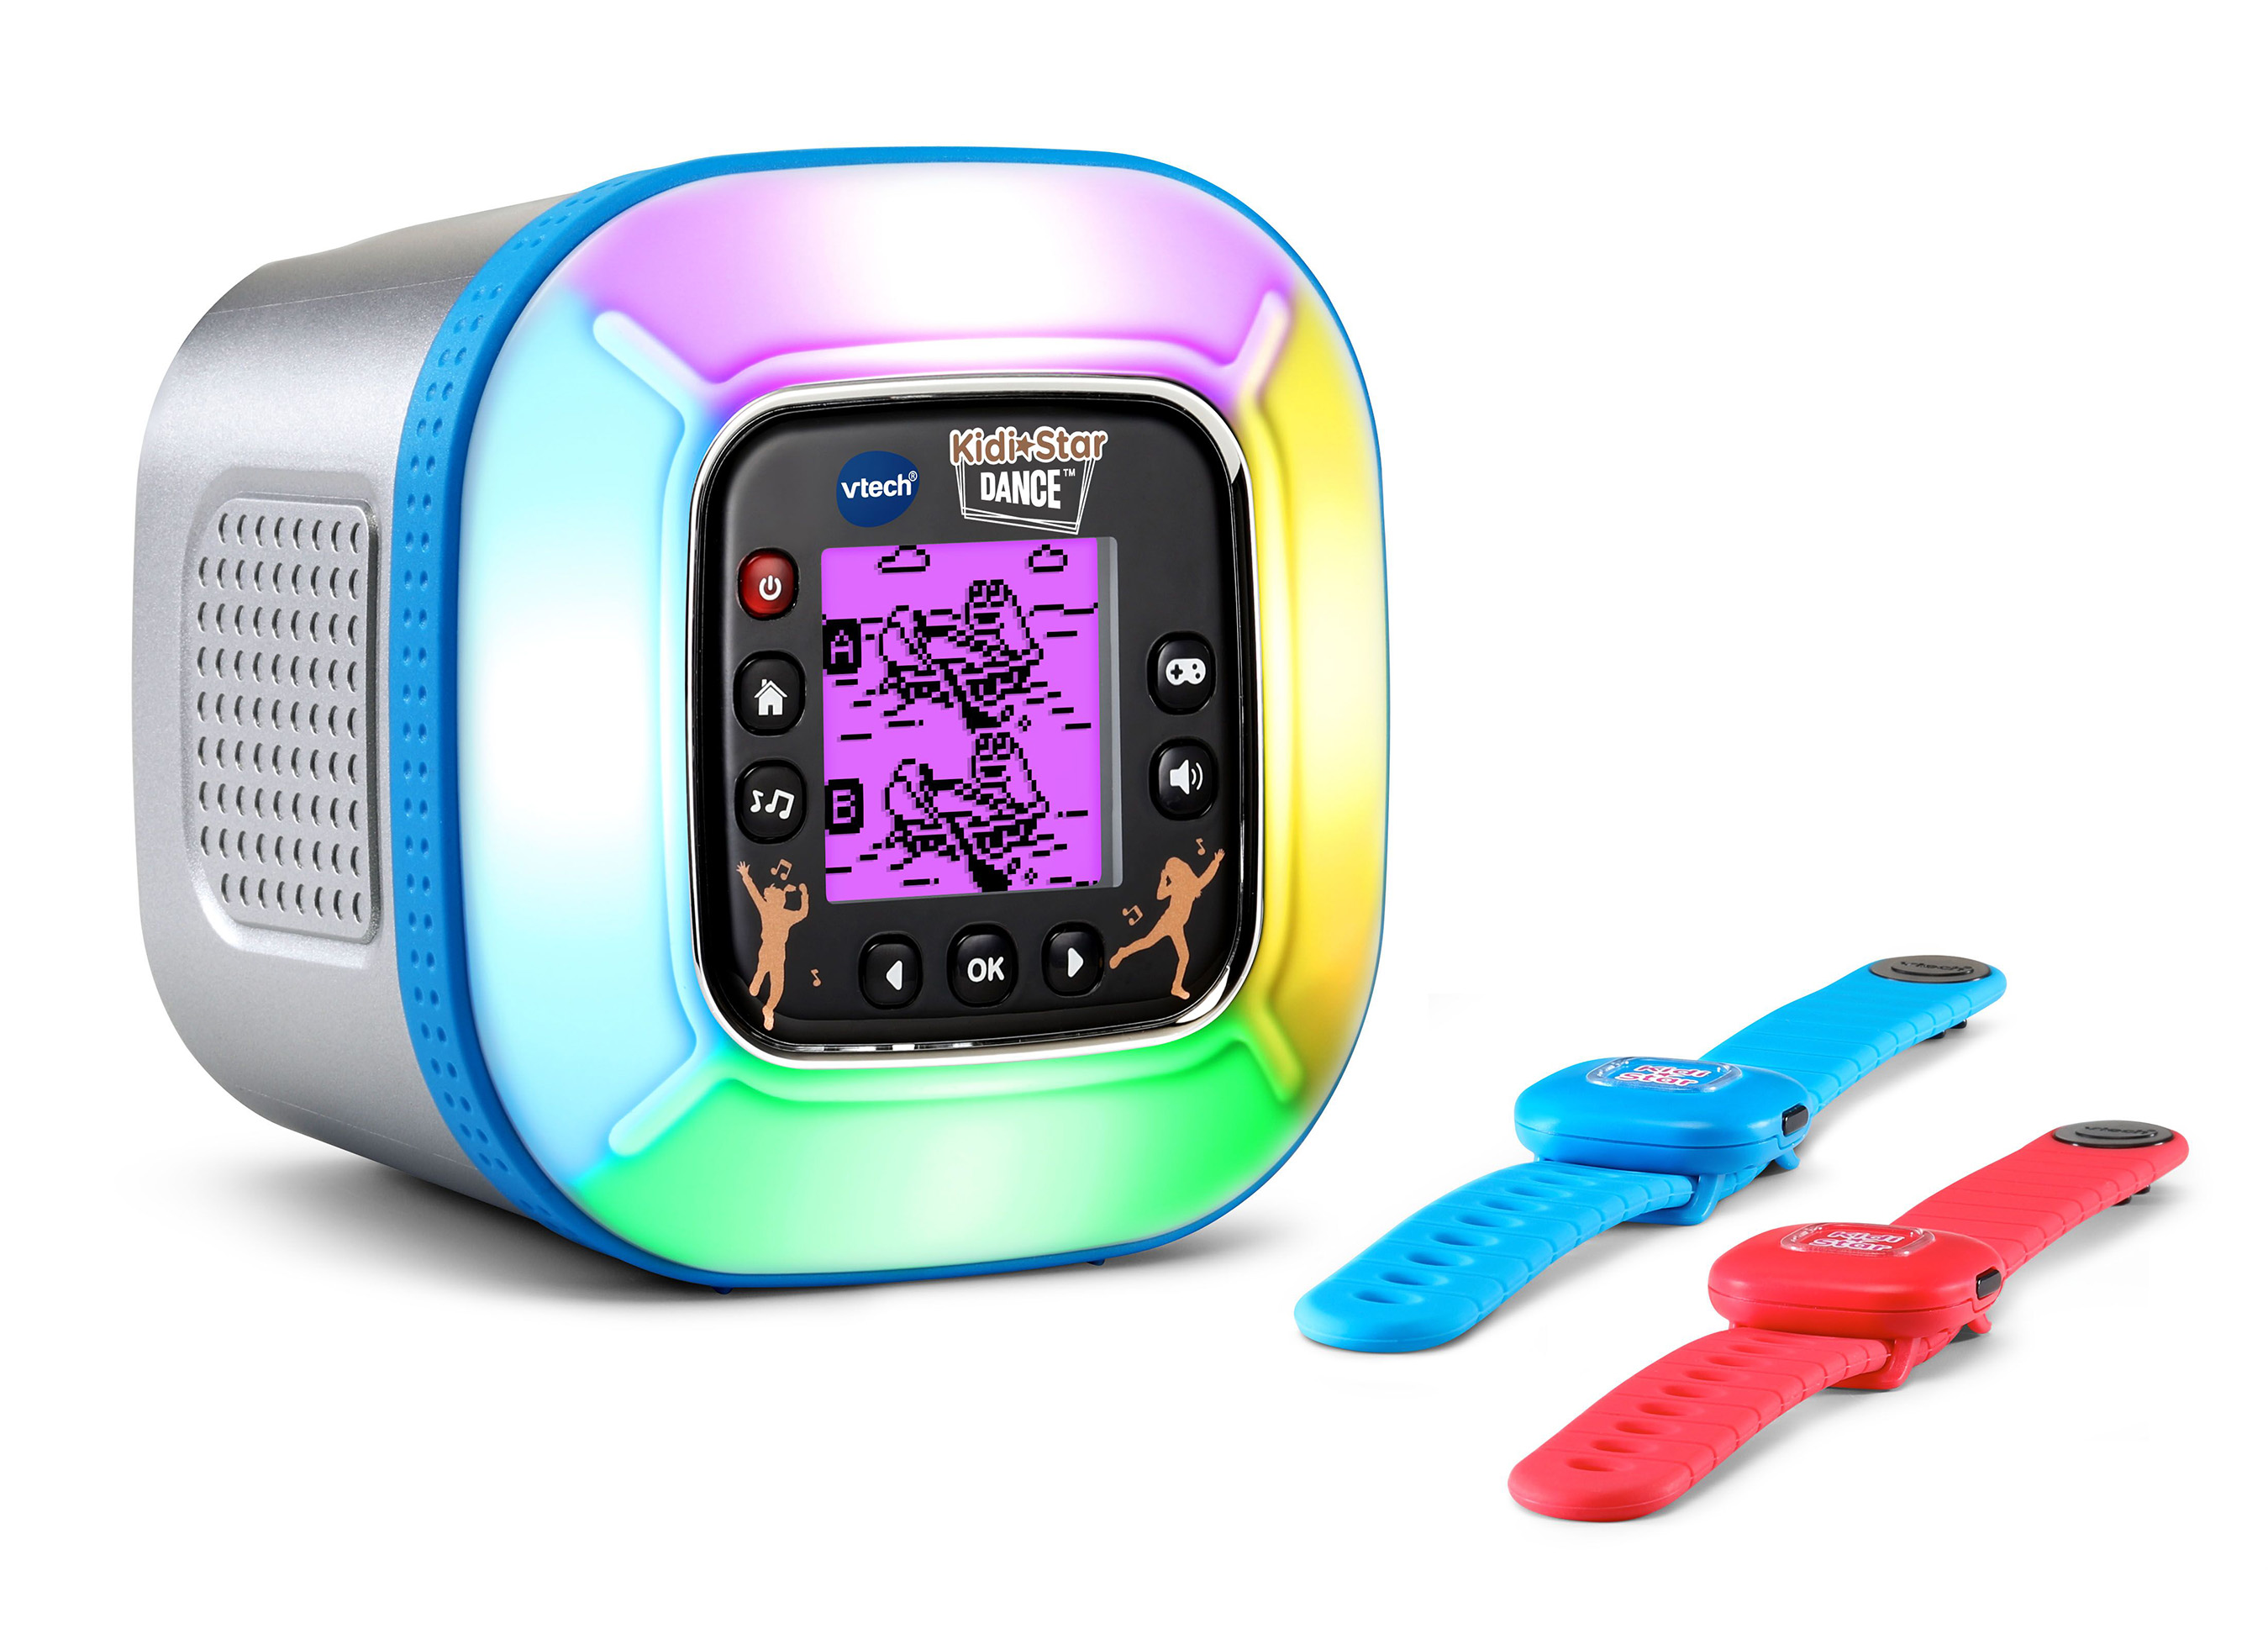 VTech® provides kids with an active play experience with the new Kidi Star Dance™.